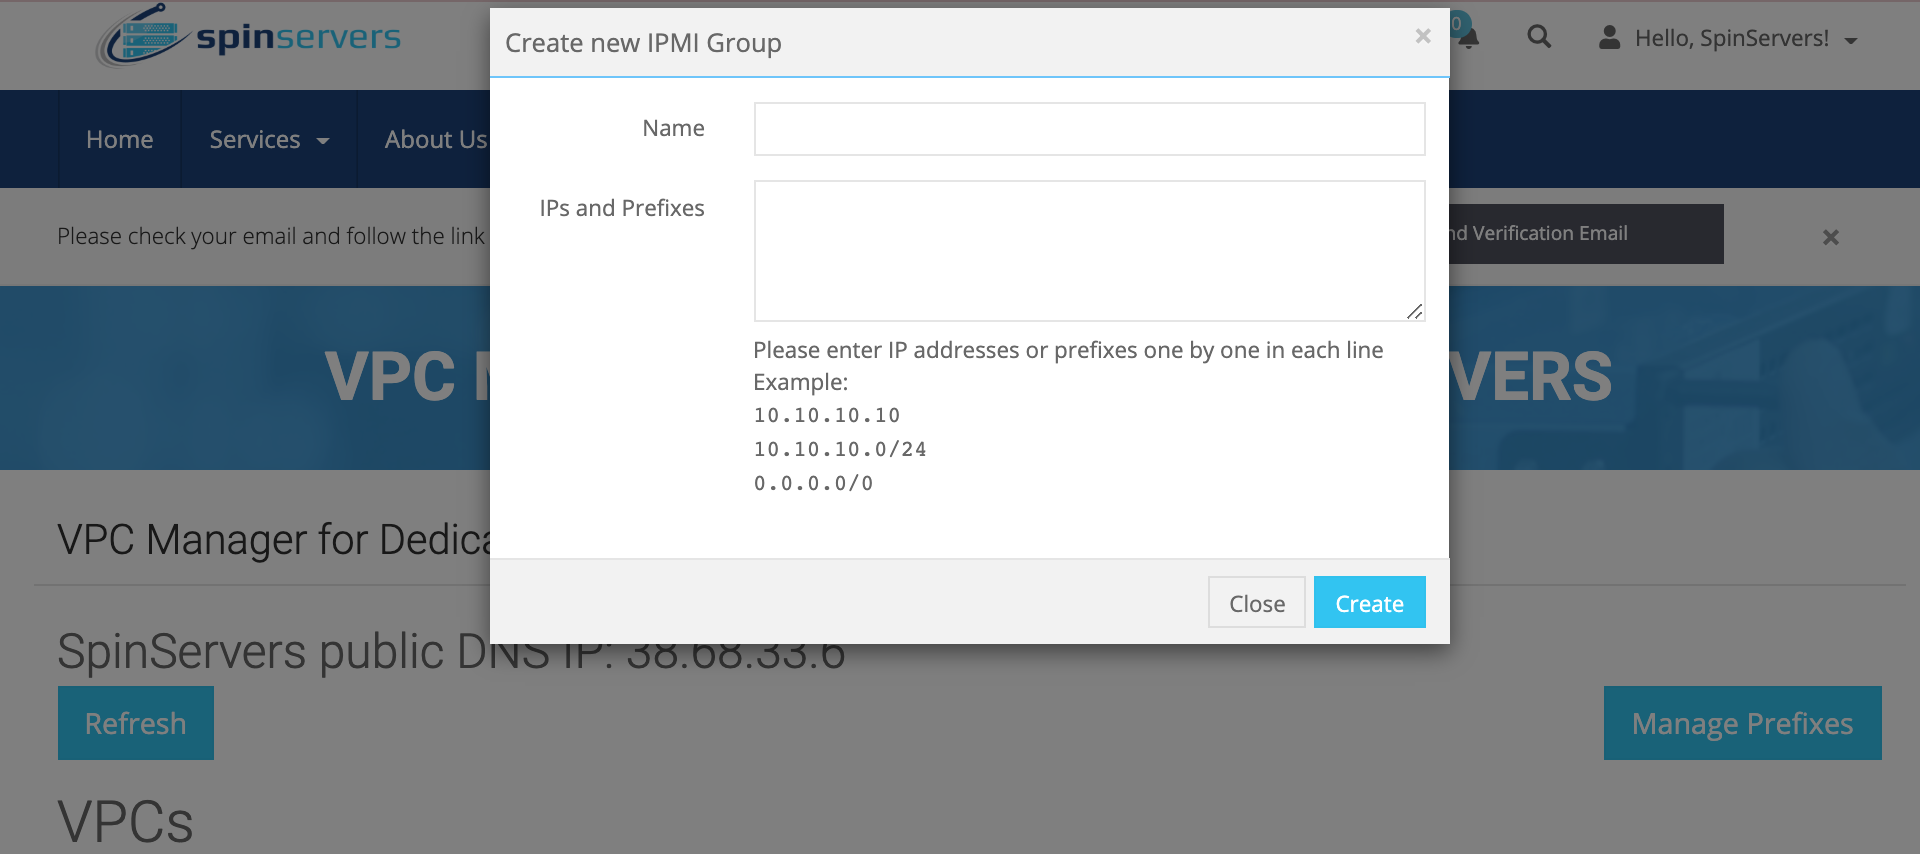 SpinServers IPMI Groups